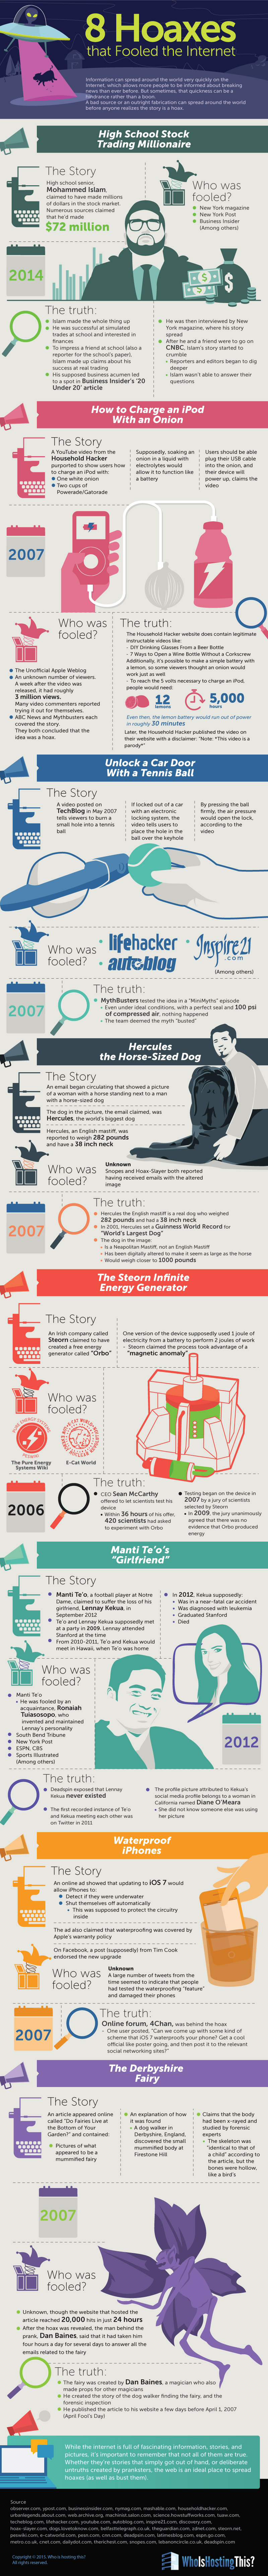 8 Hoaxes that Fooled the Internet #infographic